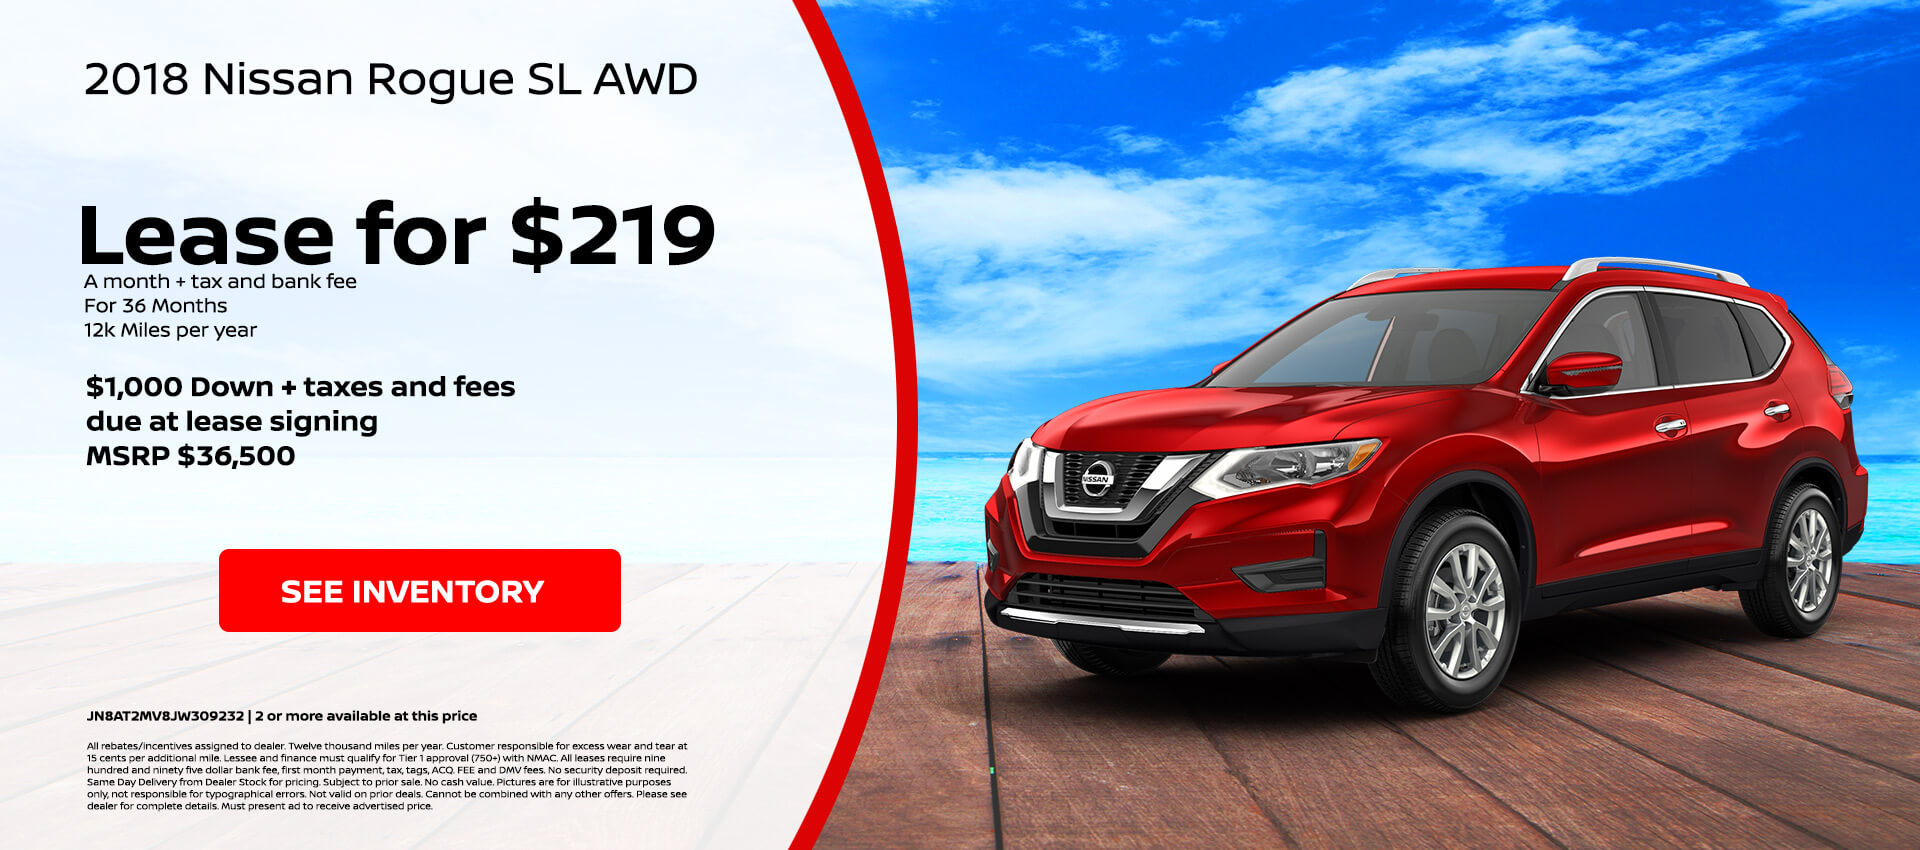 Nissan Rogue SL $219 Lease